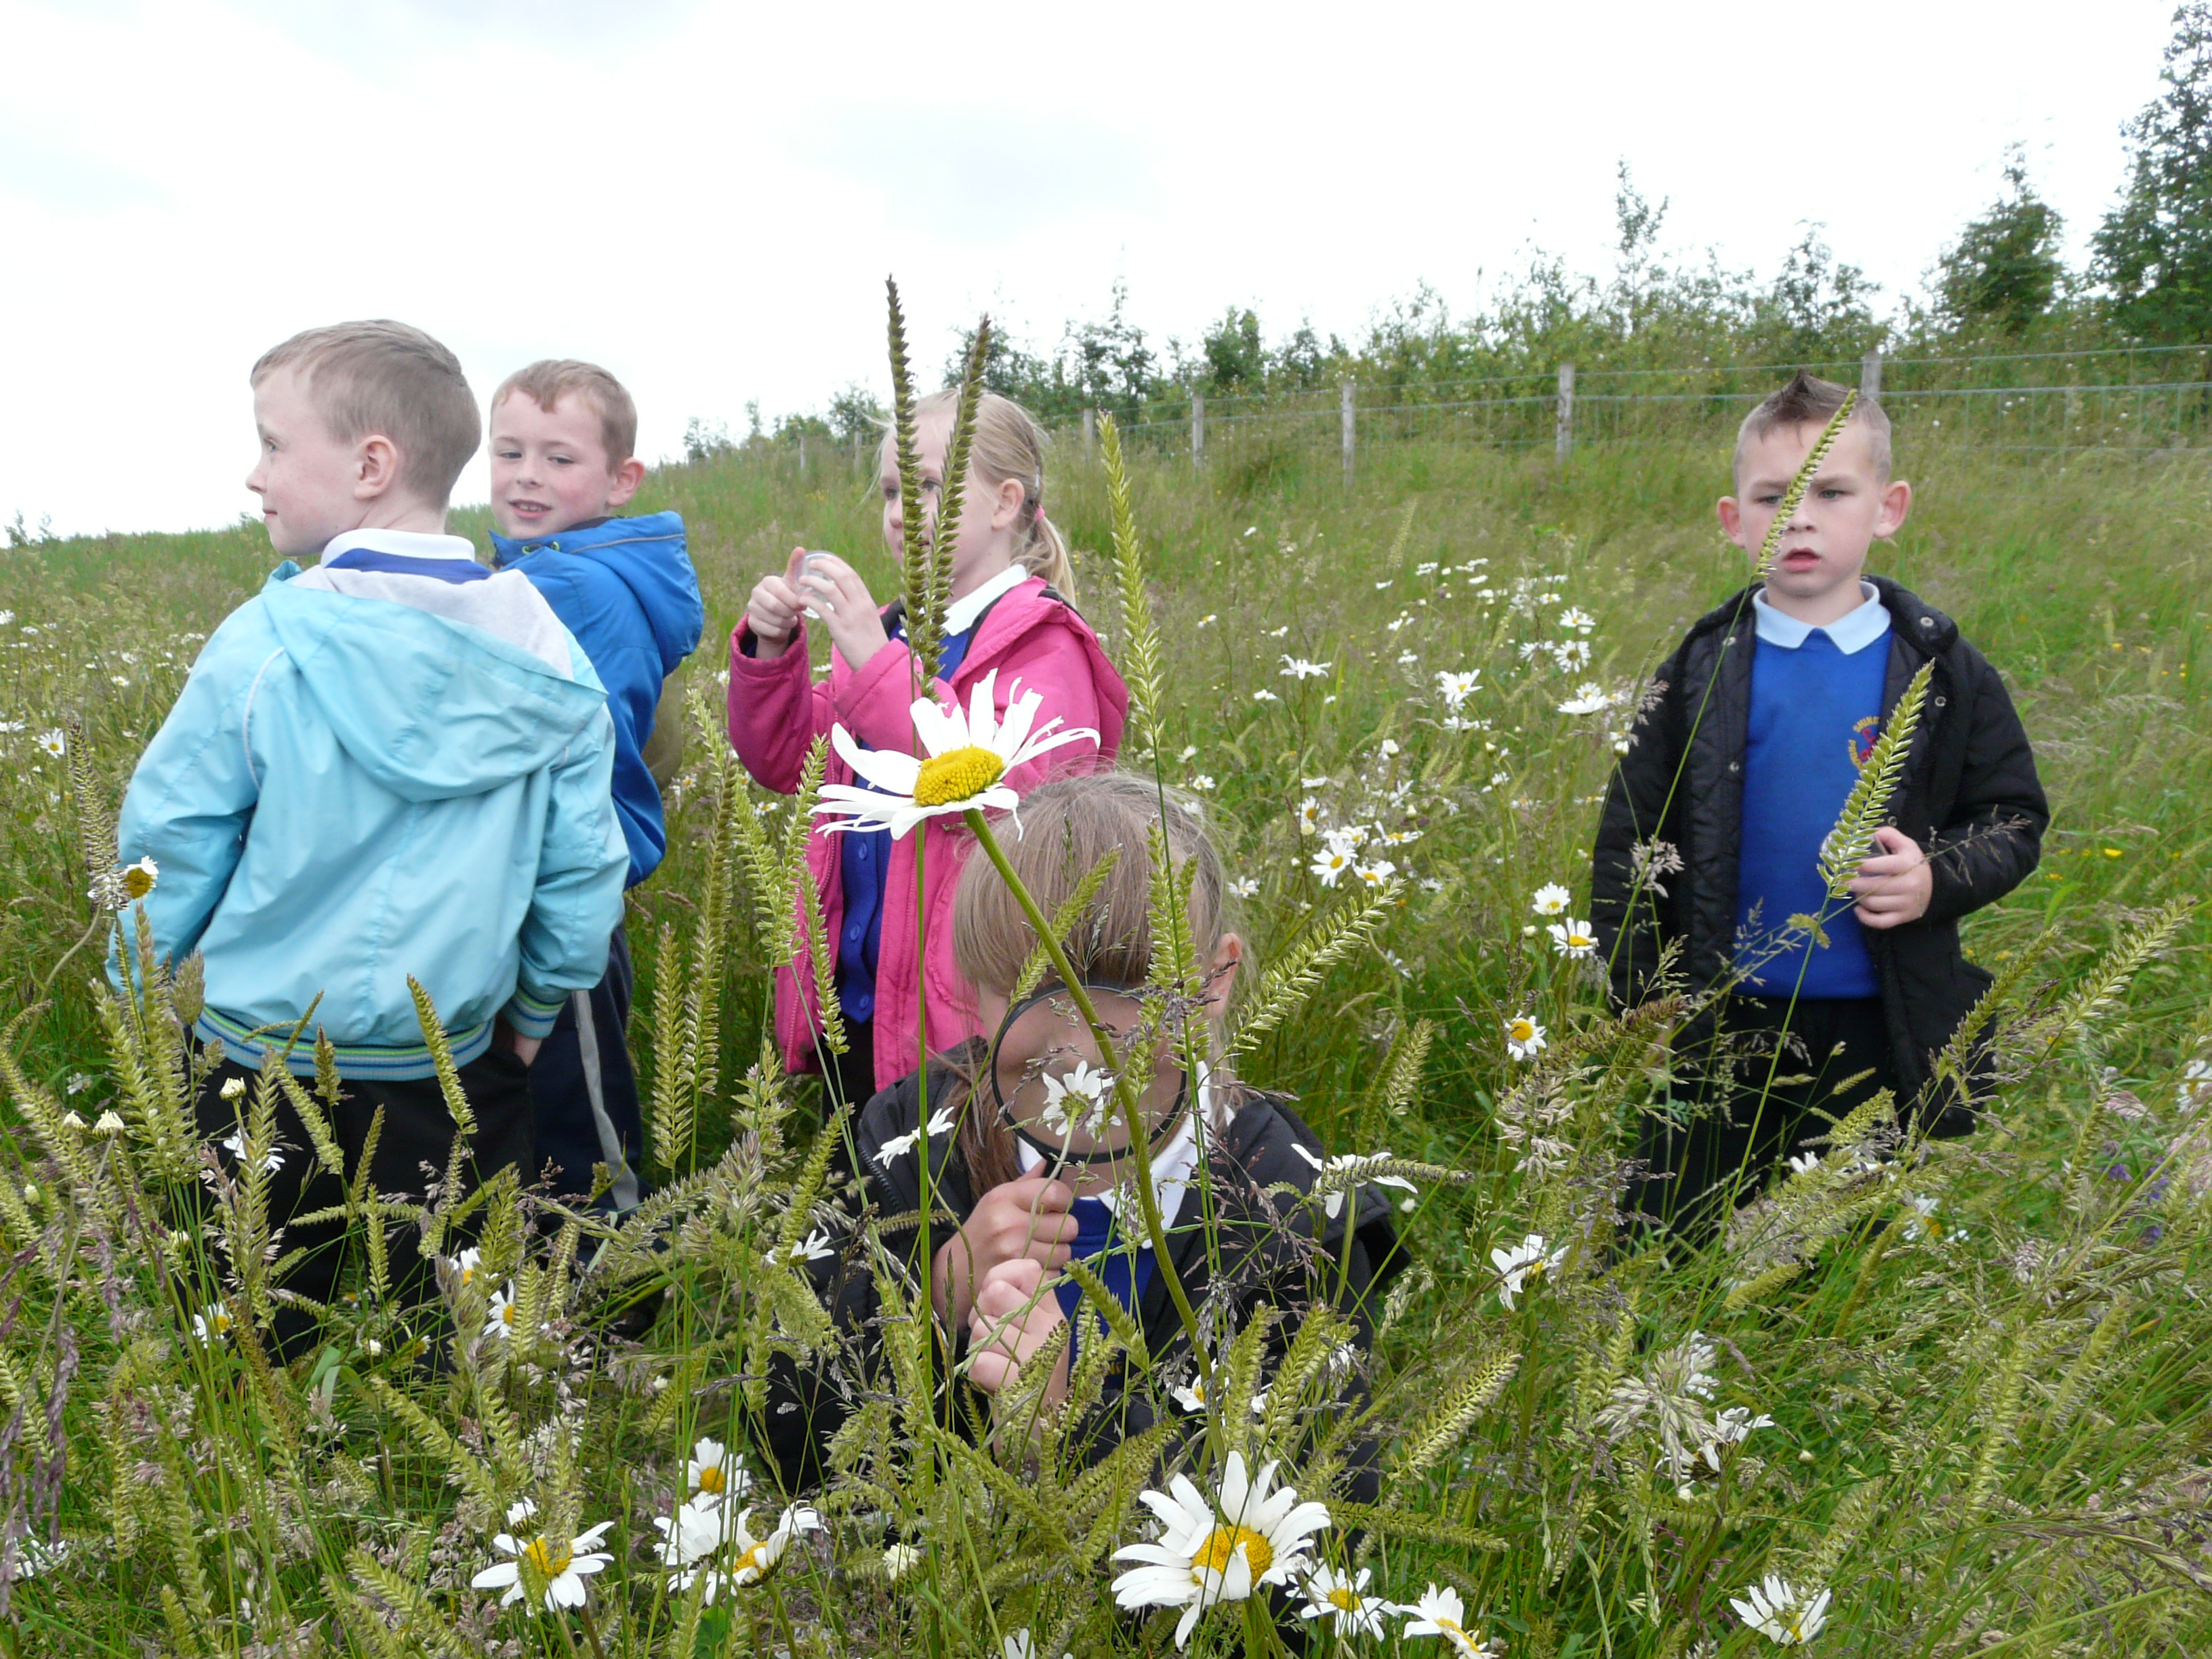 Blog: Importance of outdoor learning